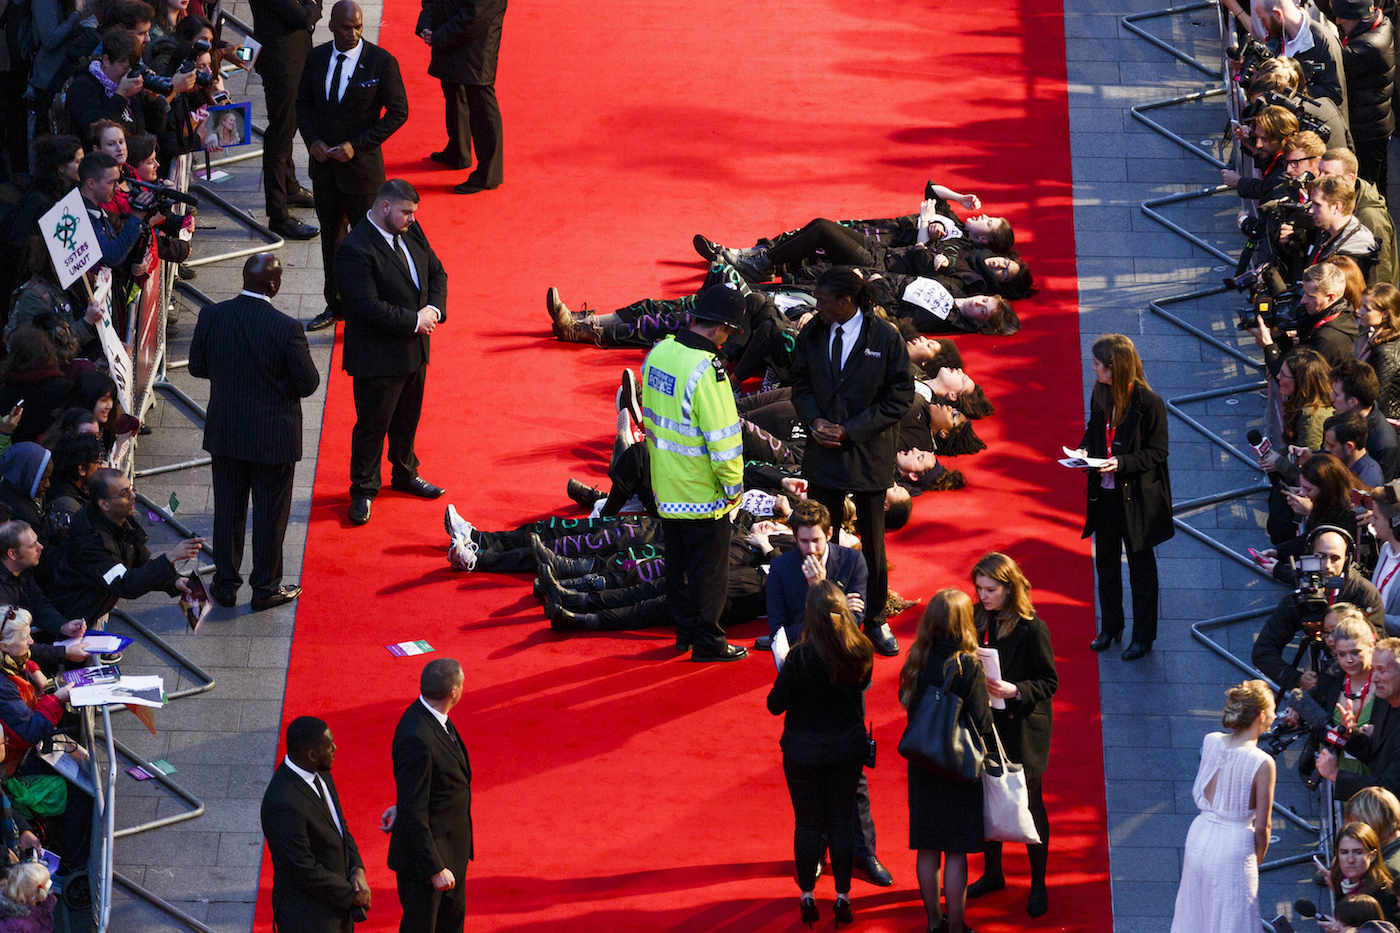 LONDON, ENGLAND - OCTOBER 07:  A feminist group Sisters Uncut protesting against cuts to support for victims of domestic violence  occupy the red carpet during a protest at the Suffragette premiere on the Opening Night Gala of the BFI London Film Festival at Odeon Leicester Square on October 7, 2015 in London, England.  (Photo by Tristan Fewings/Getty Images)